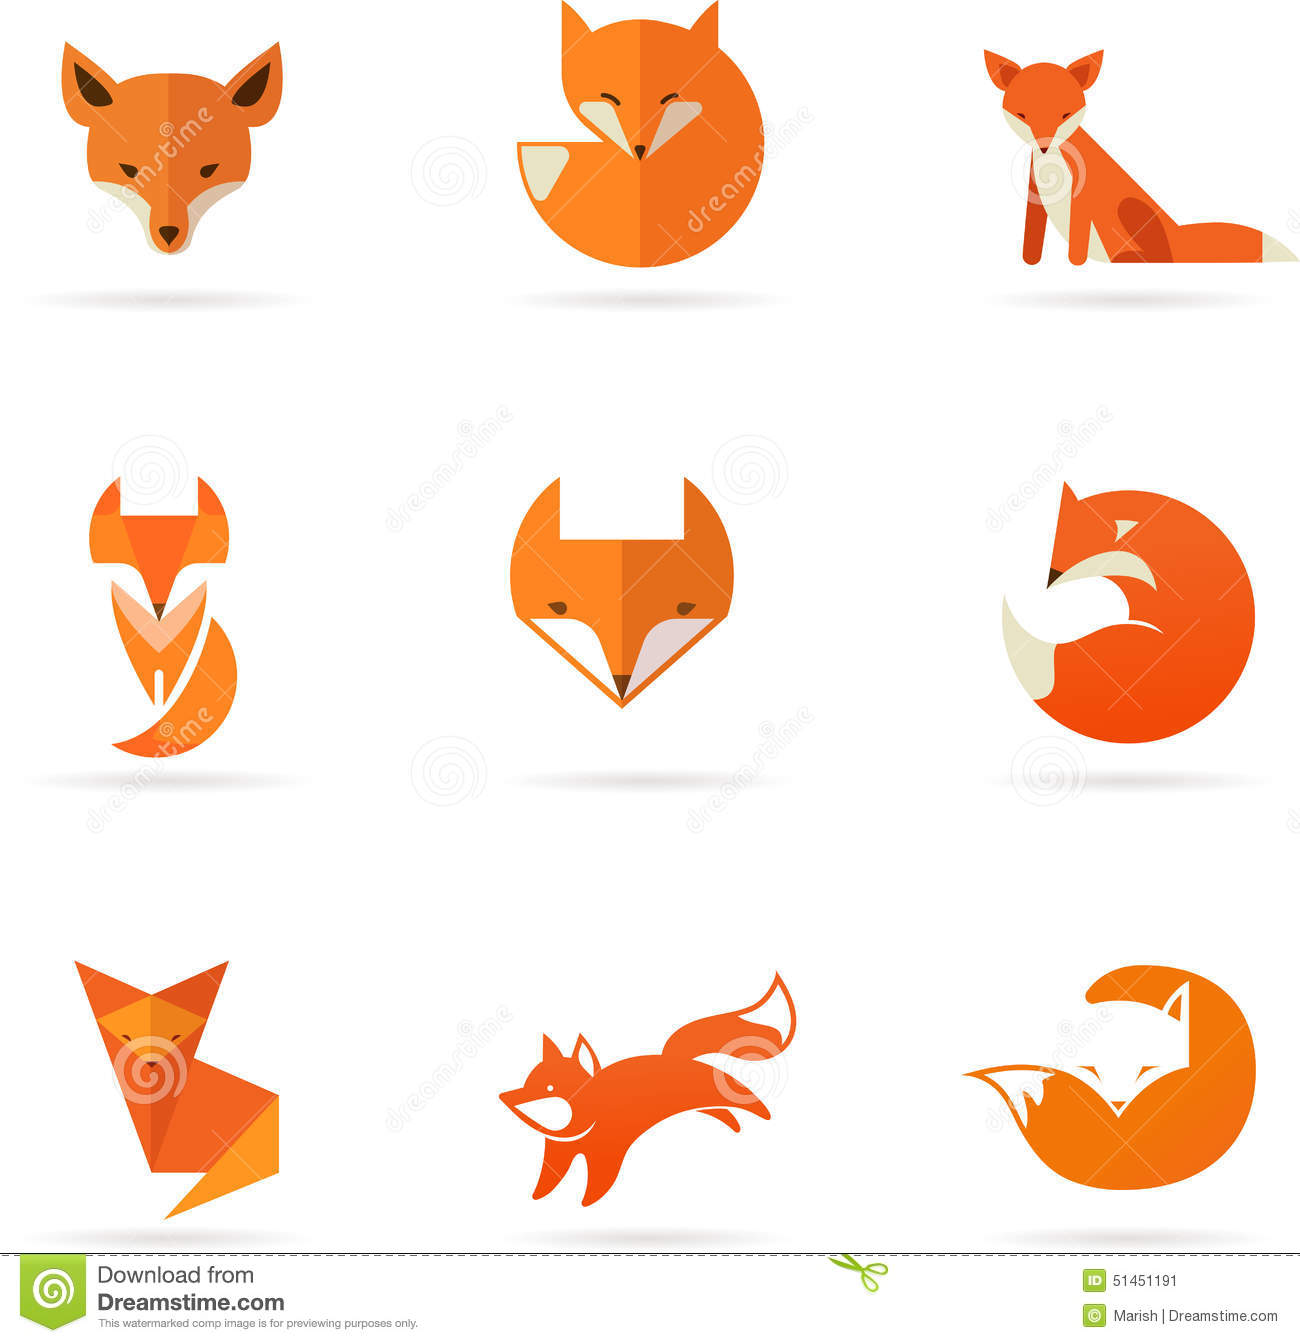 Fox Icons, Illustrations And Elements Stock Vector - Image: 51451191